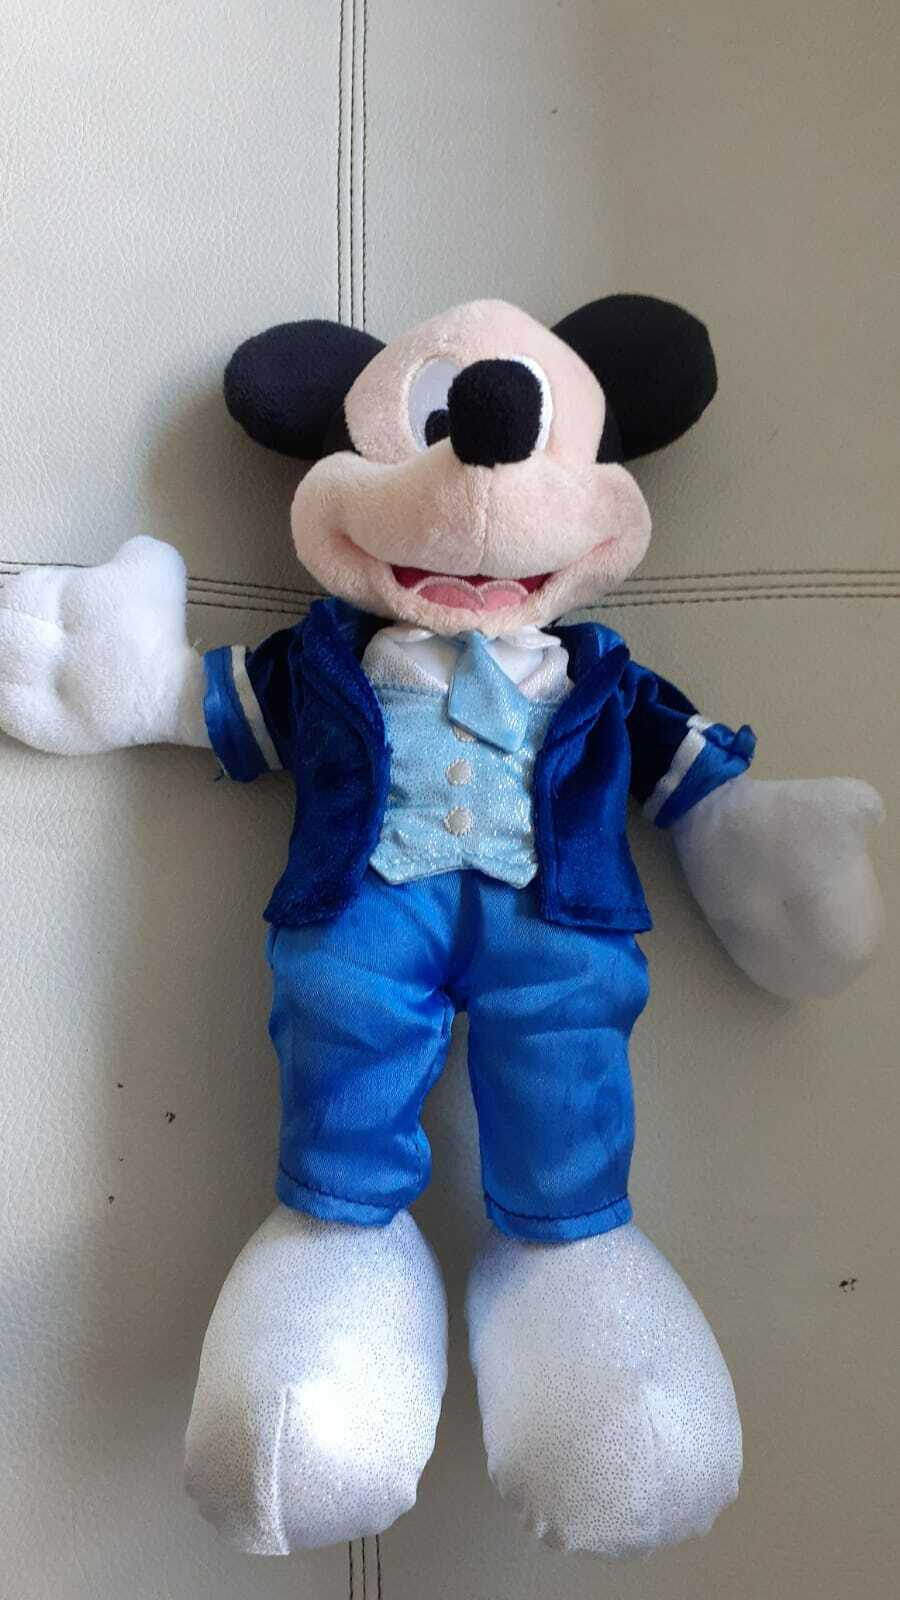 Primary image for Disney Mickey Mouse Stuffed Toy Kids Baby Boy Animal Plush Doll Blue Suit 12""